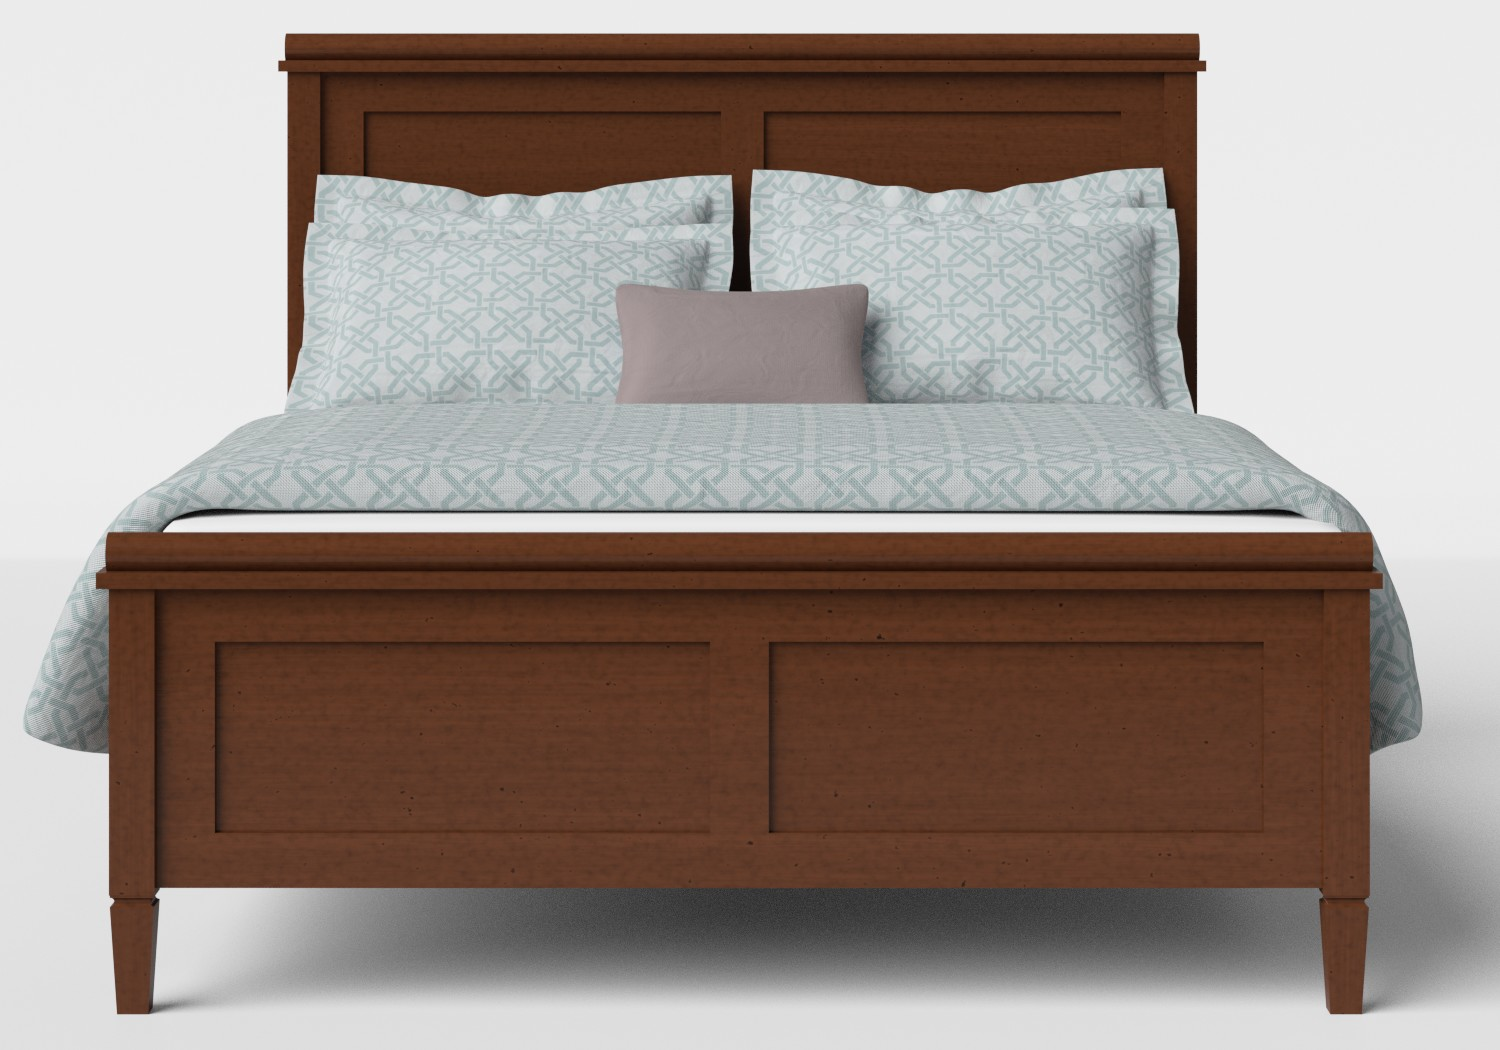 Nocturne Wood Bed in Dark Cherry